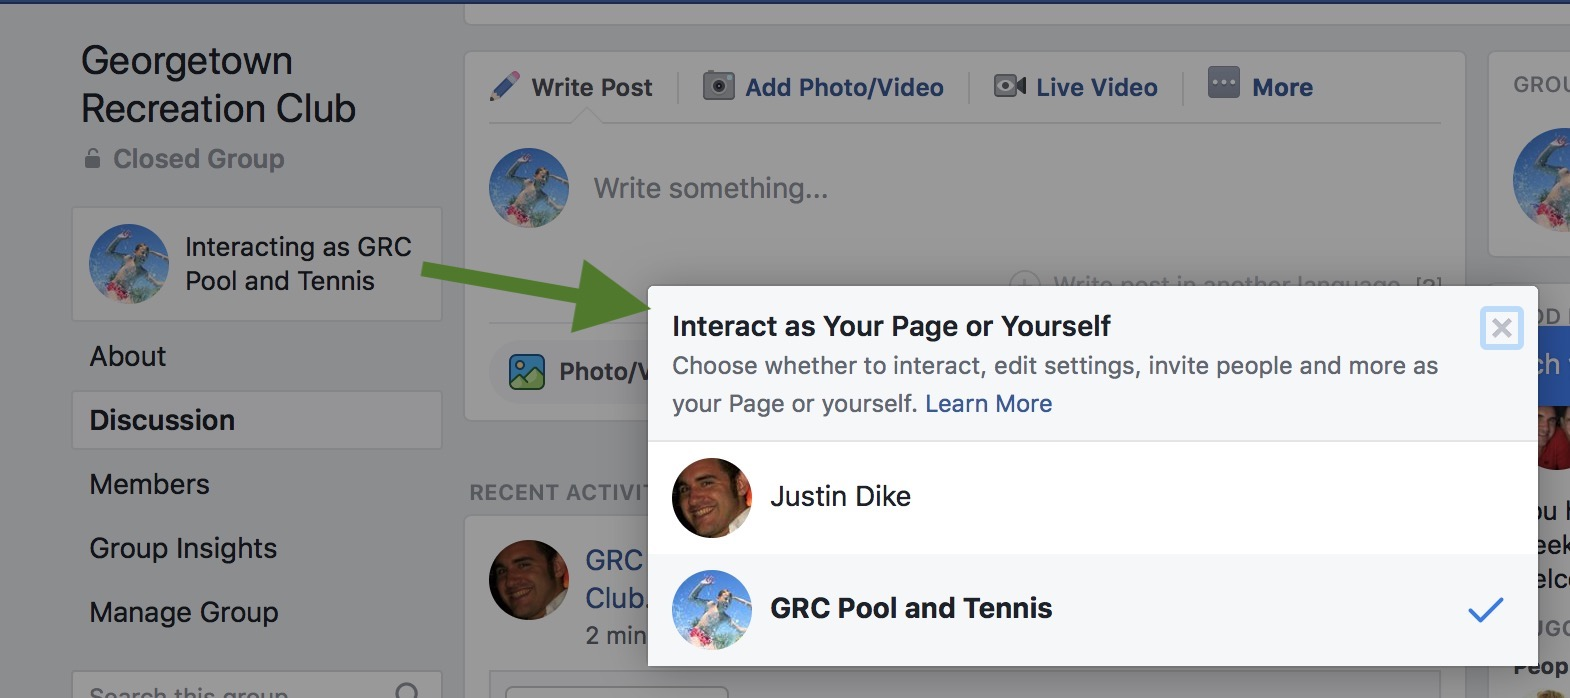 Where to look for Interact as Your Page or Yourself on Facebook